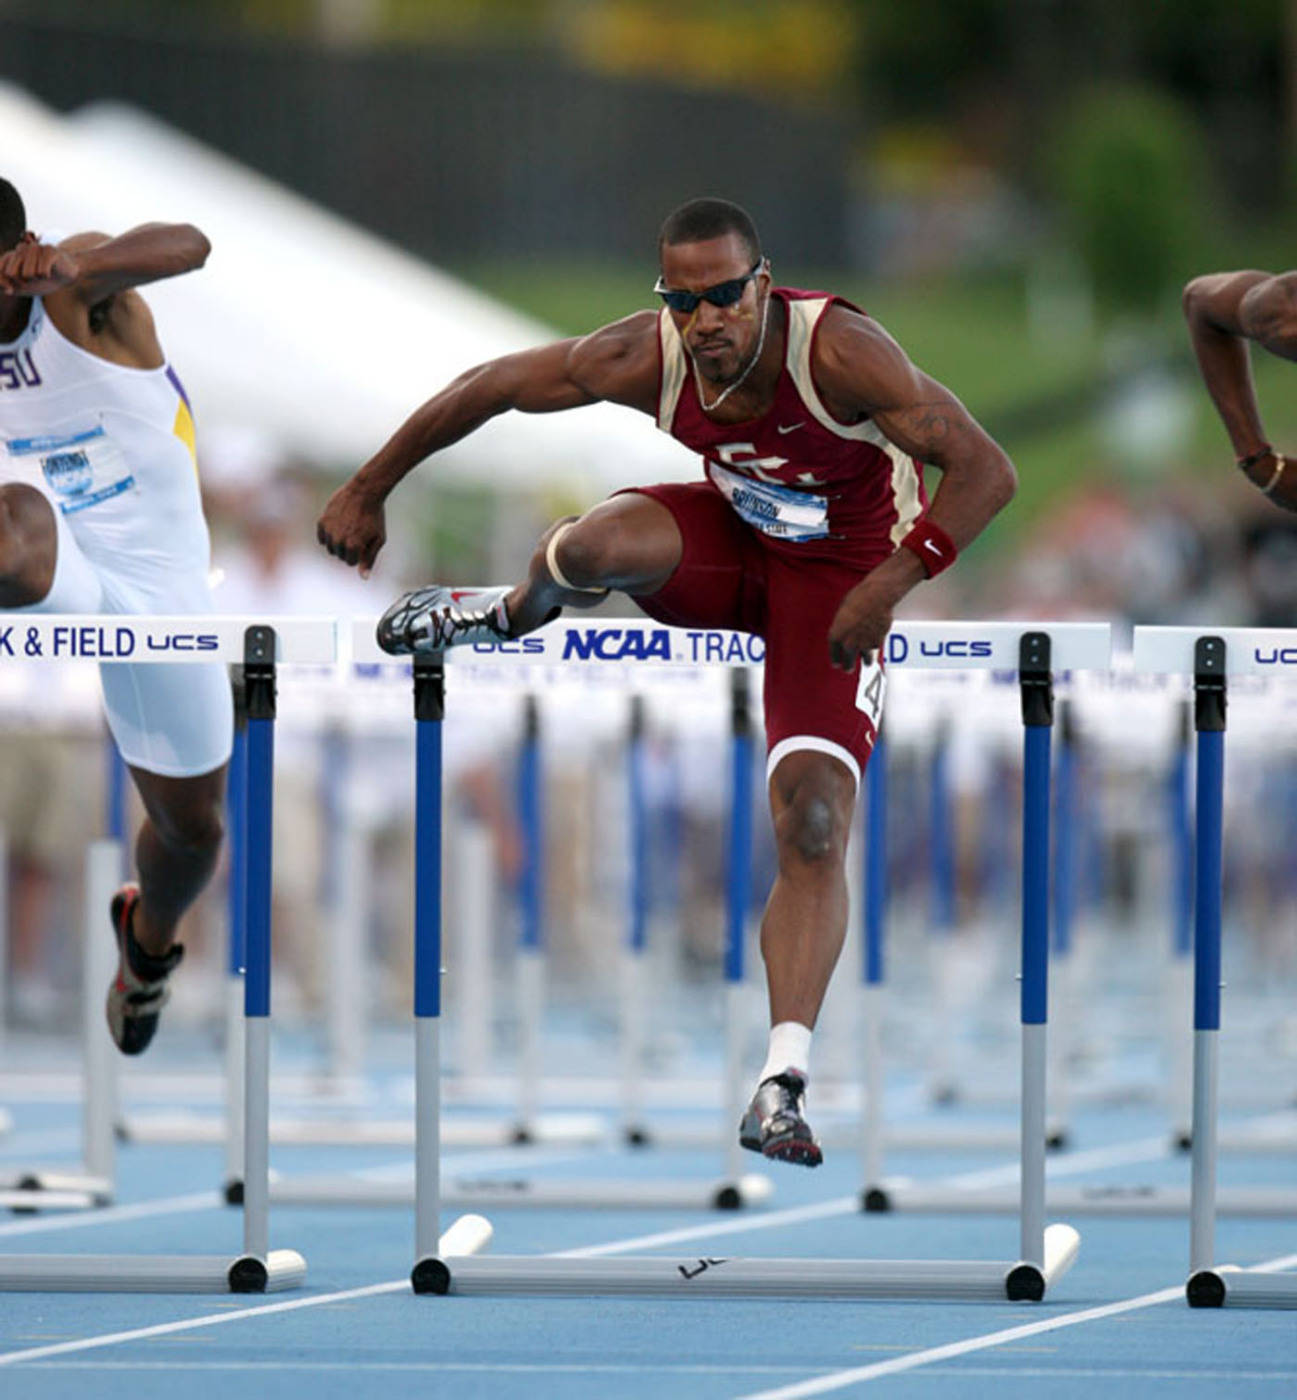 Drew Brunson moved on in the 110m hurdles